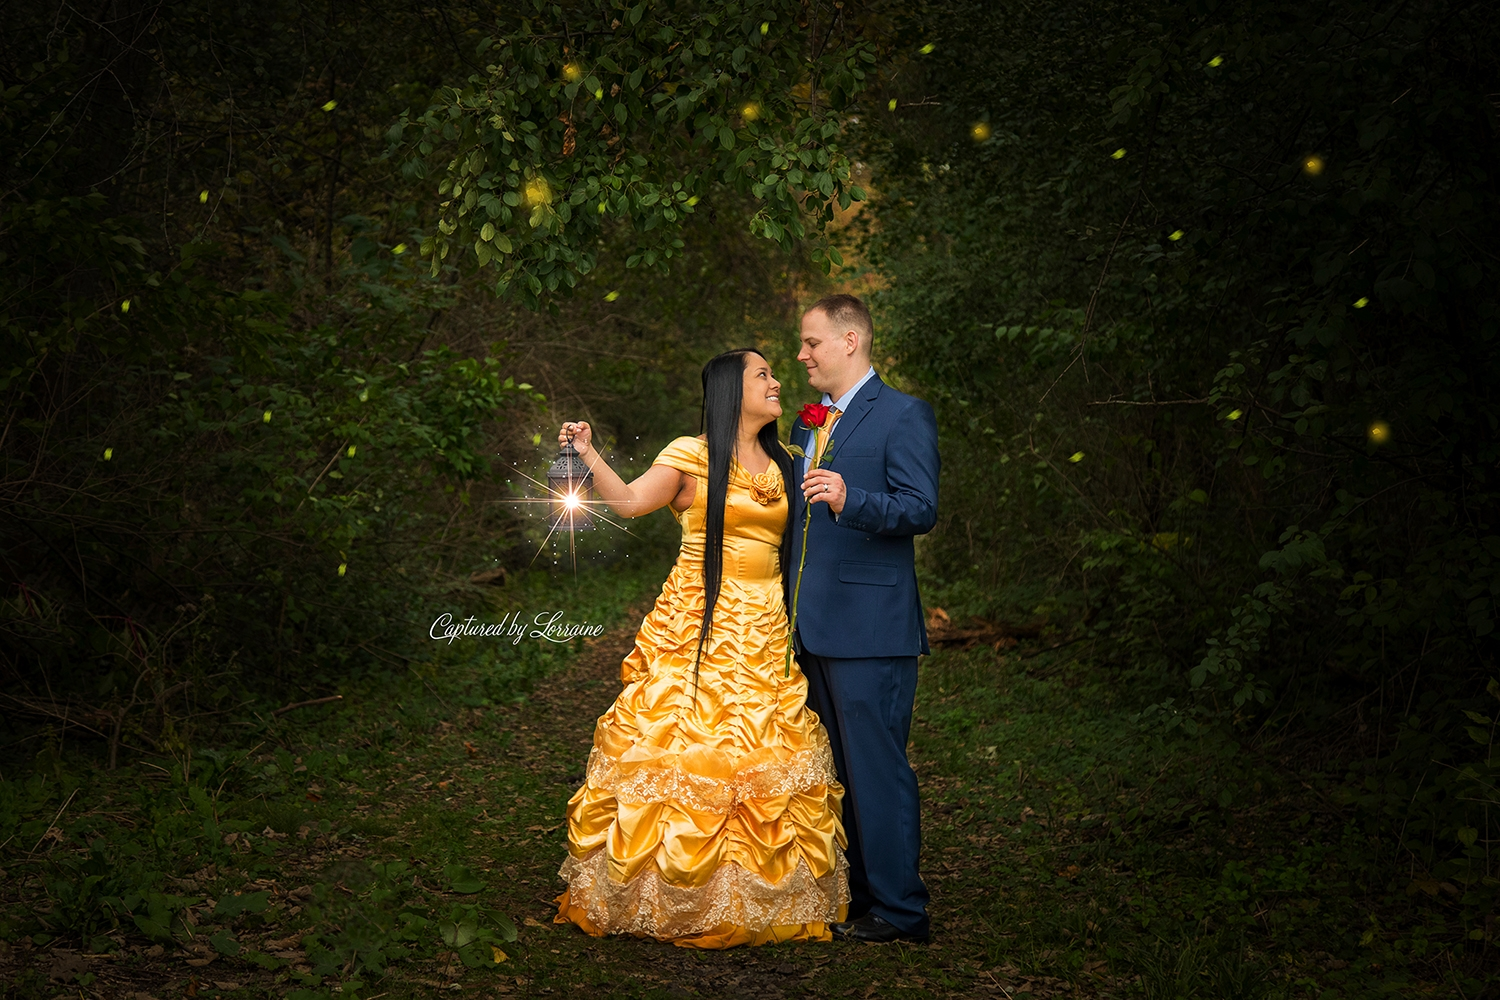 Beauty and the Beast Photoshoot St Charles Illinois